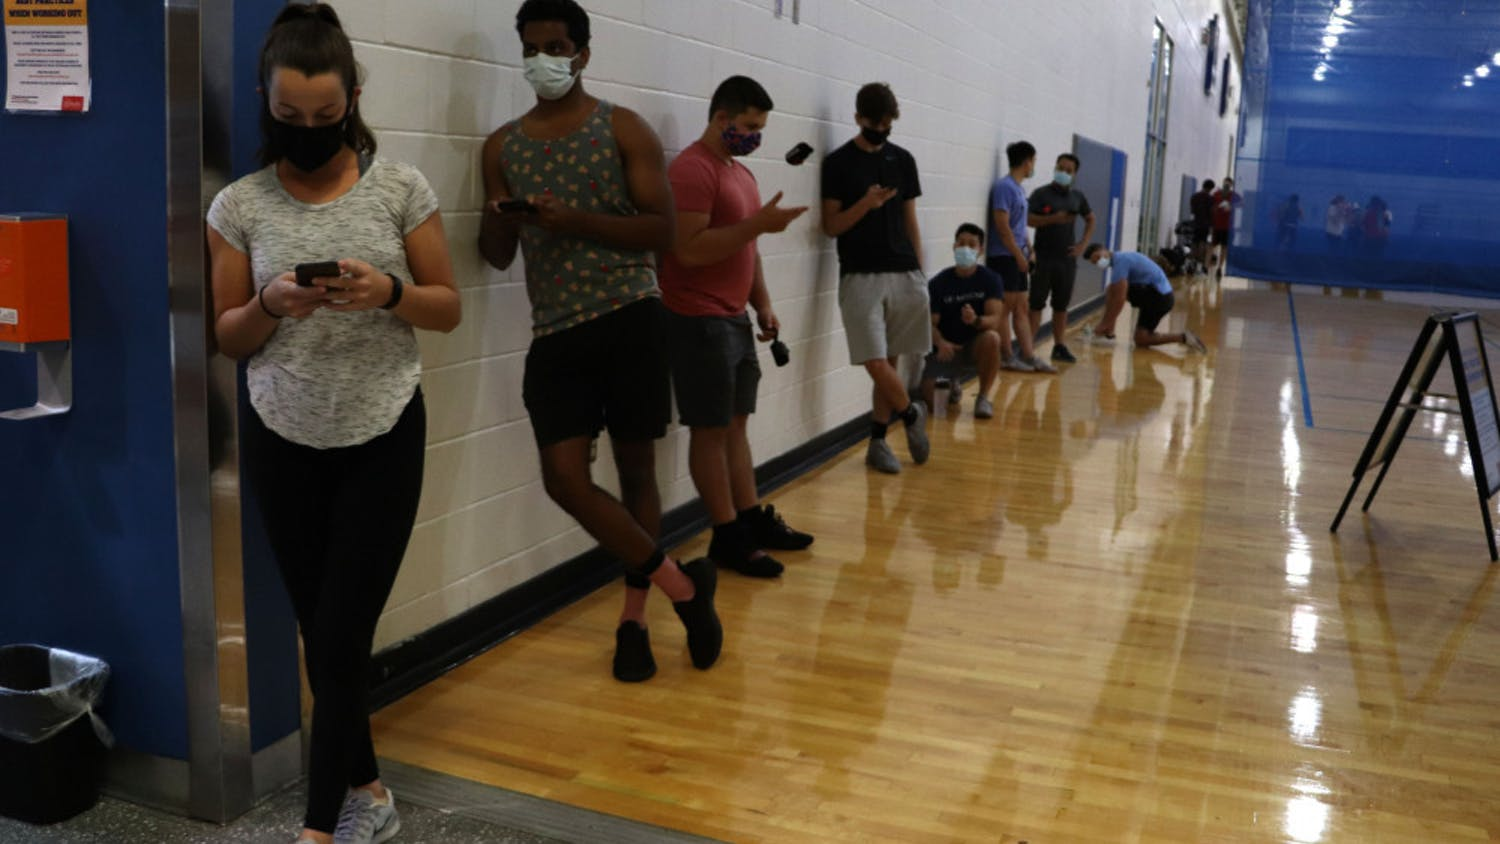 People stand in line to enter the weight room at the Southwest Recreation Center in Gainesville on Monday night, Sept. 21, 2020. According to recsports.ufl.edu, the weight room is open at limited capacity, however the website does not state how many people are allowed at one time.